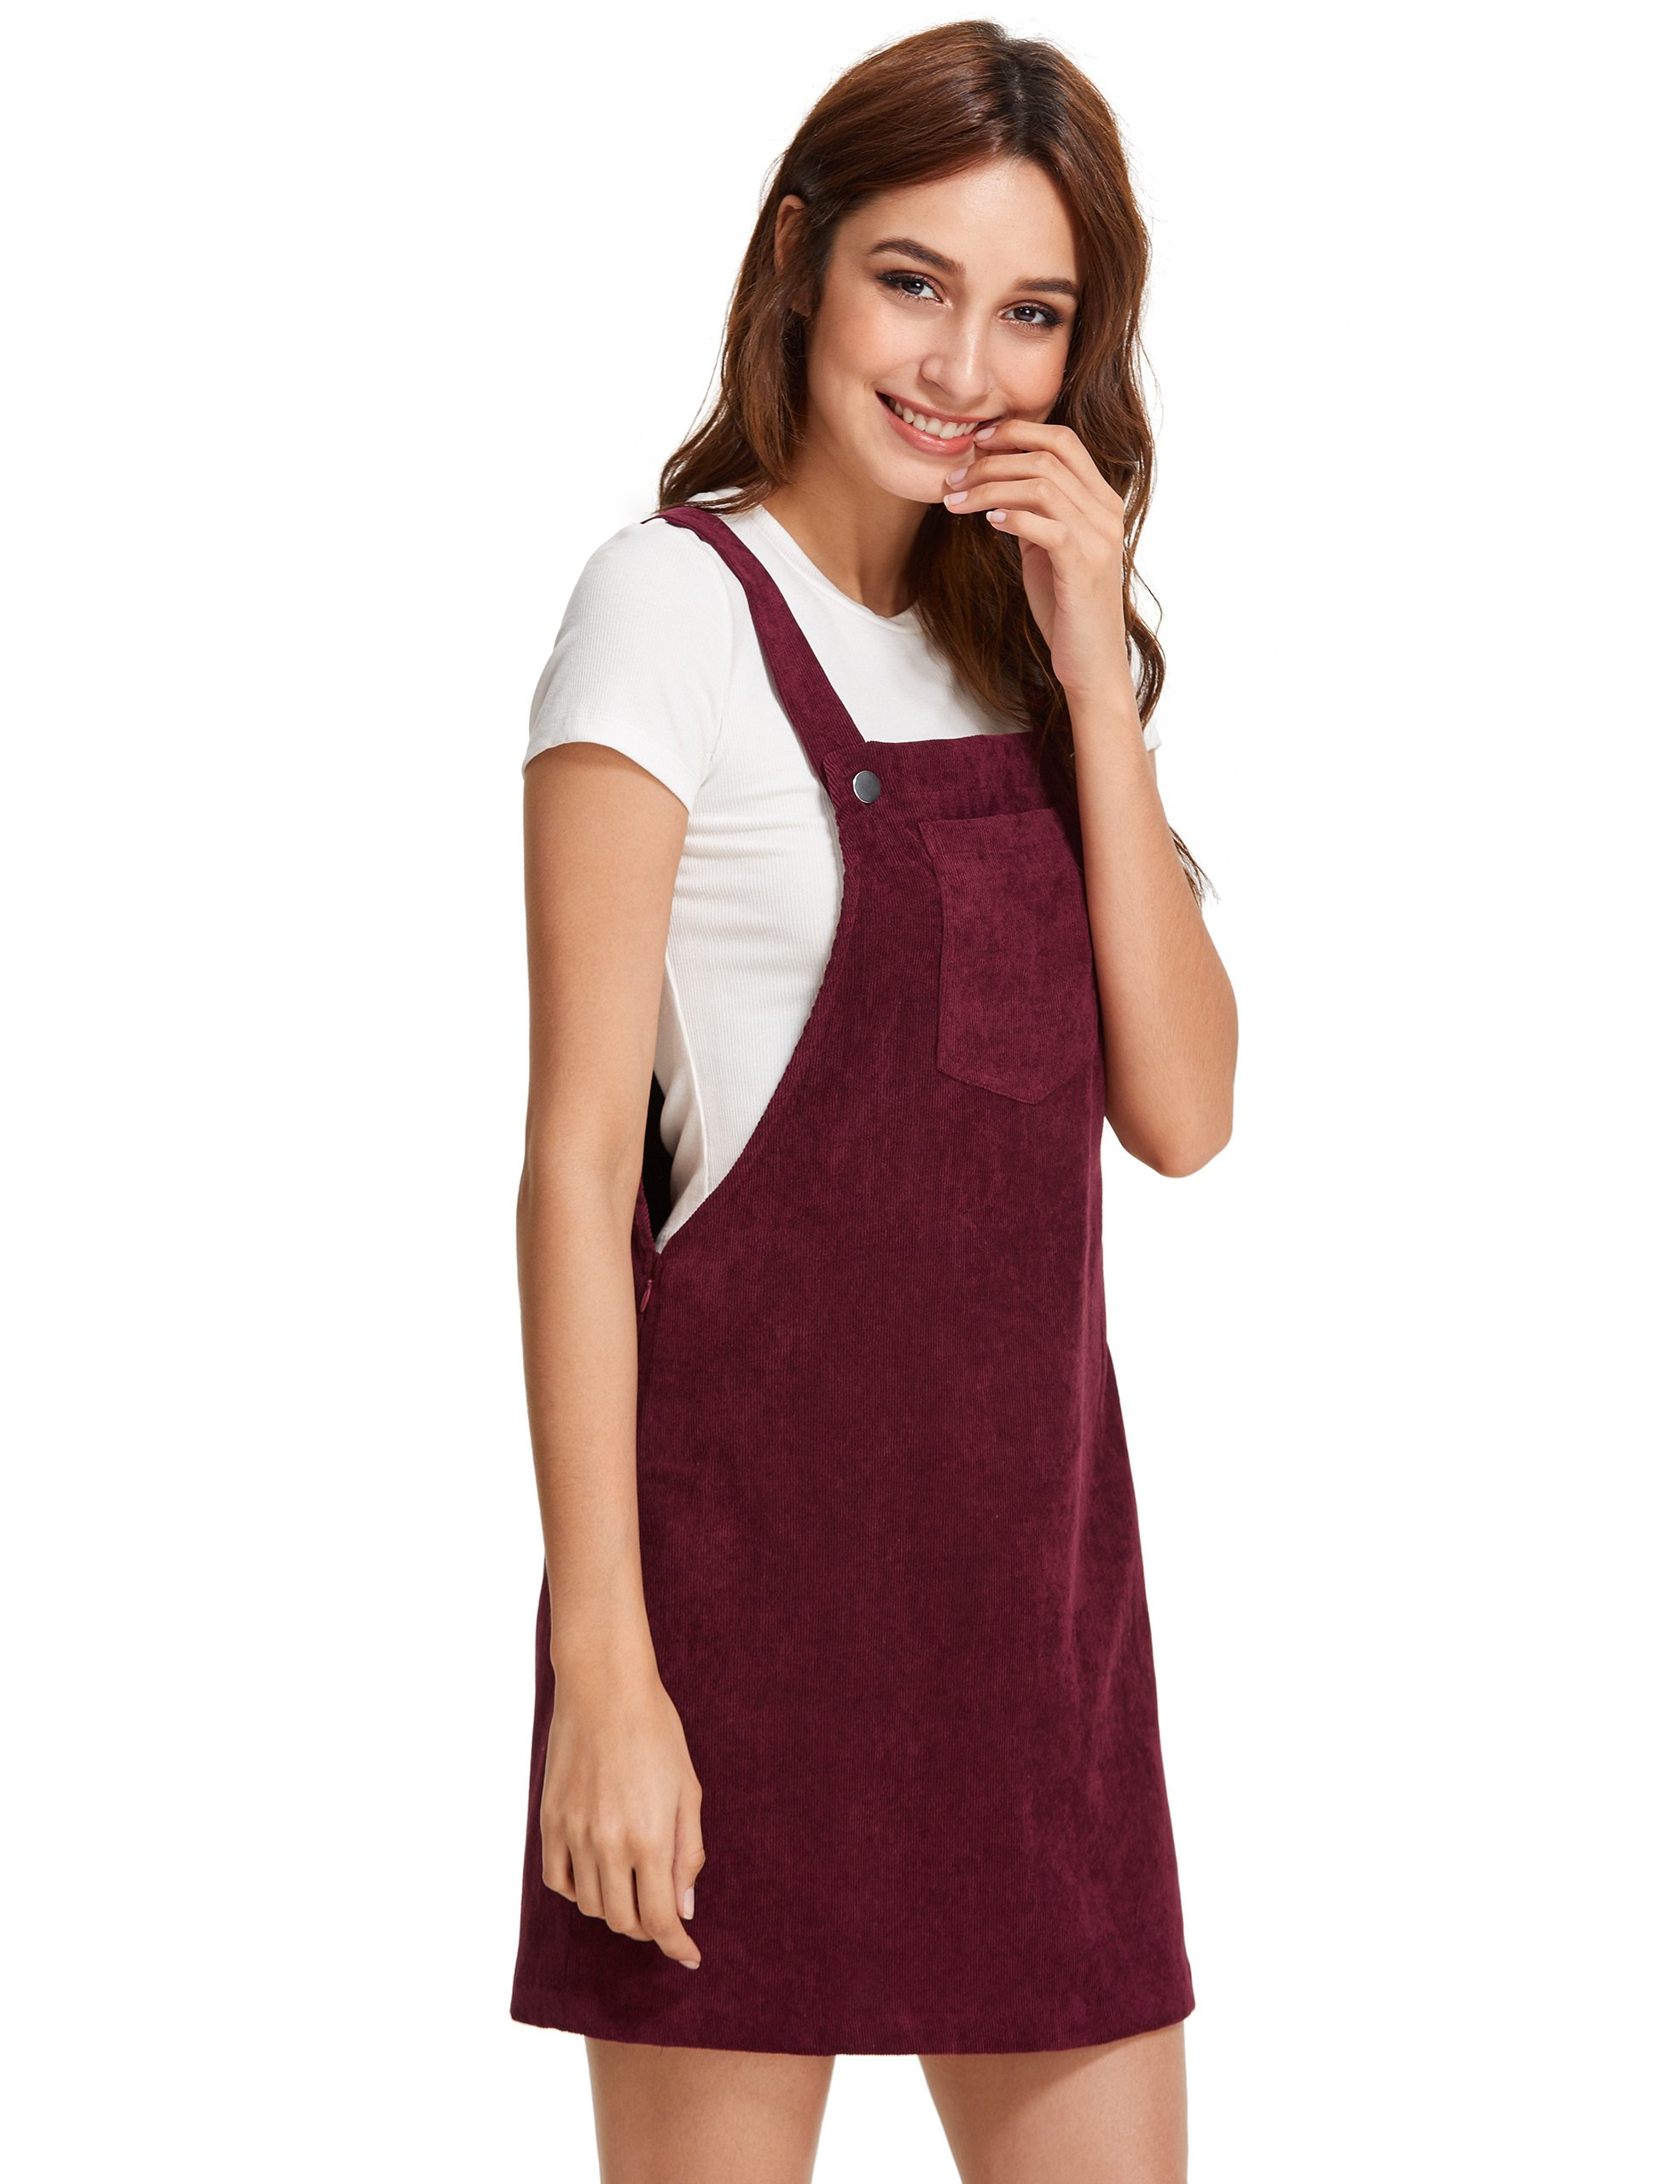 e2830519d36 Romwe Women s Straps A-Line Corduroy Pinafore Bib Pocket Overall Dress  Burgundy XS   Dresses   Clothing